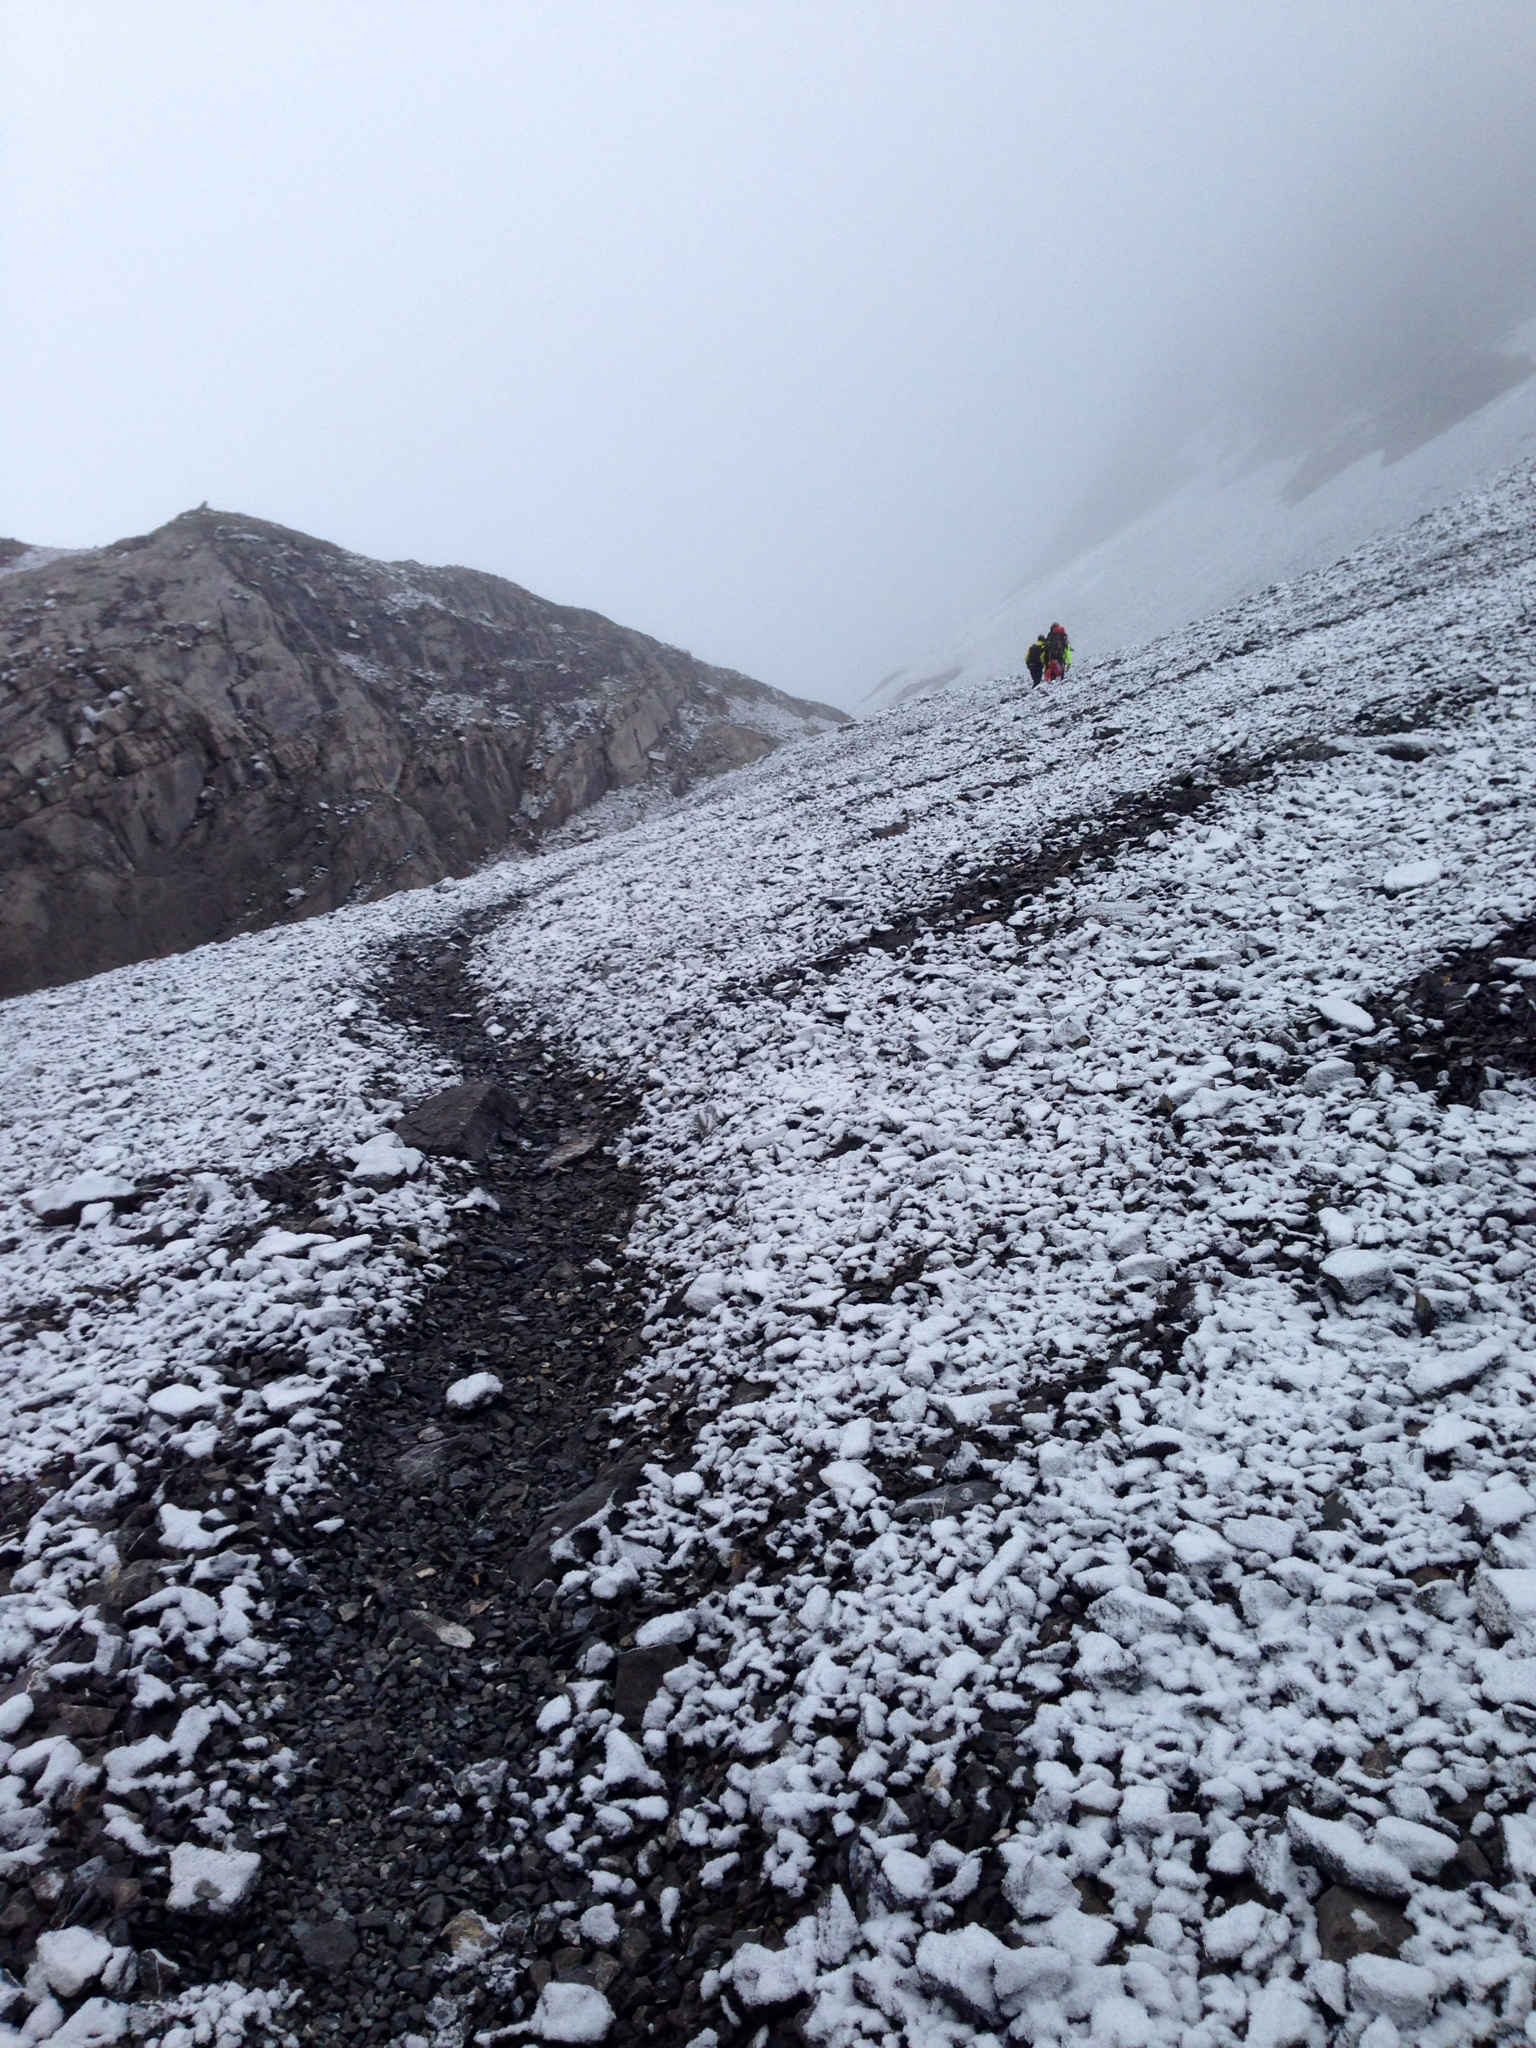 Snow dusting on the hike up.